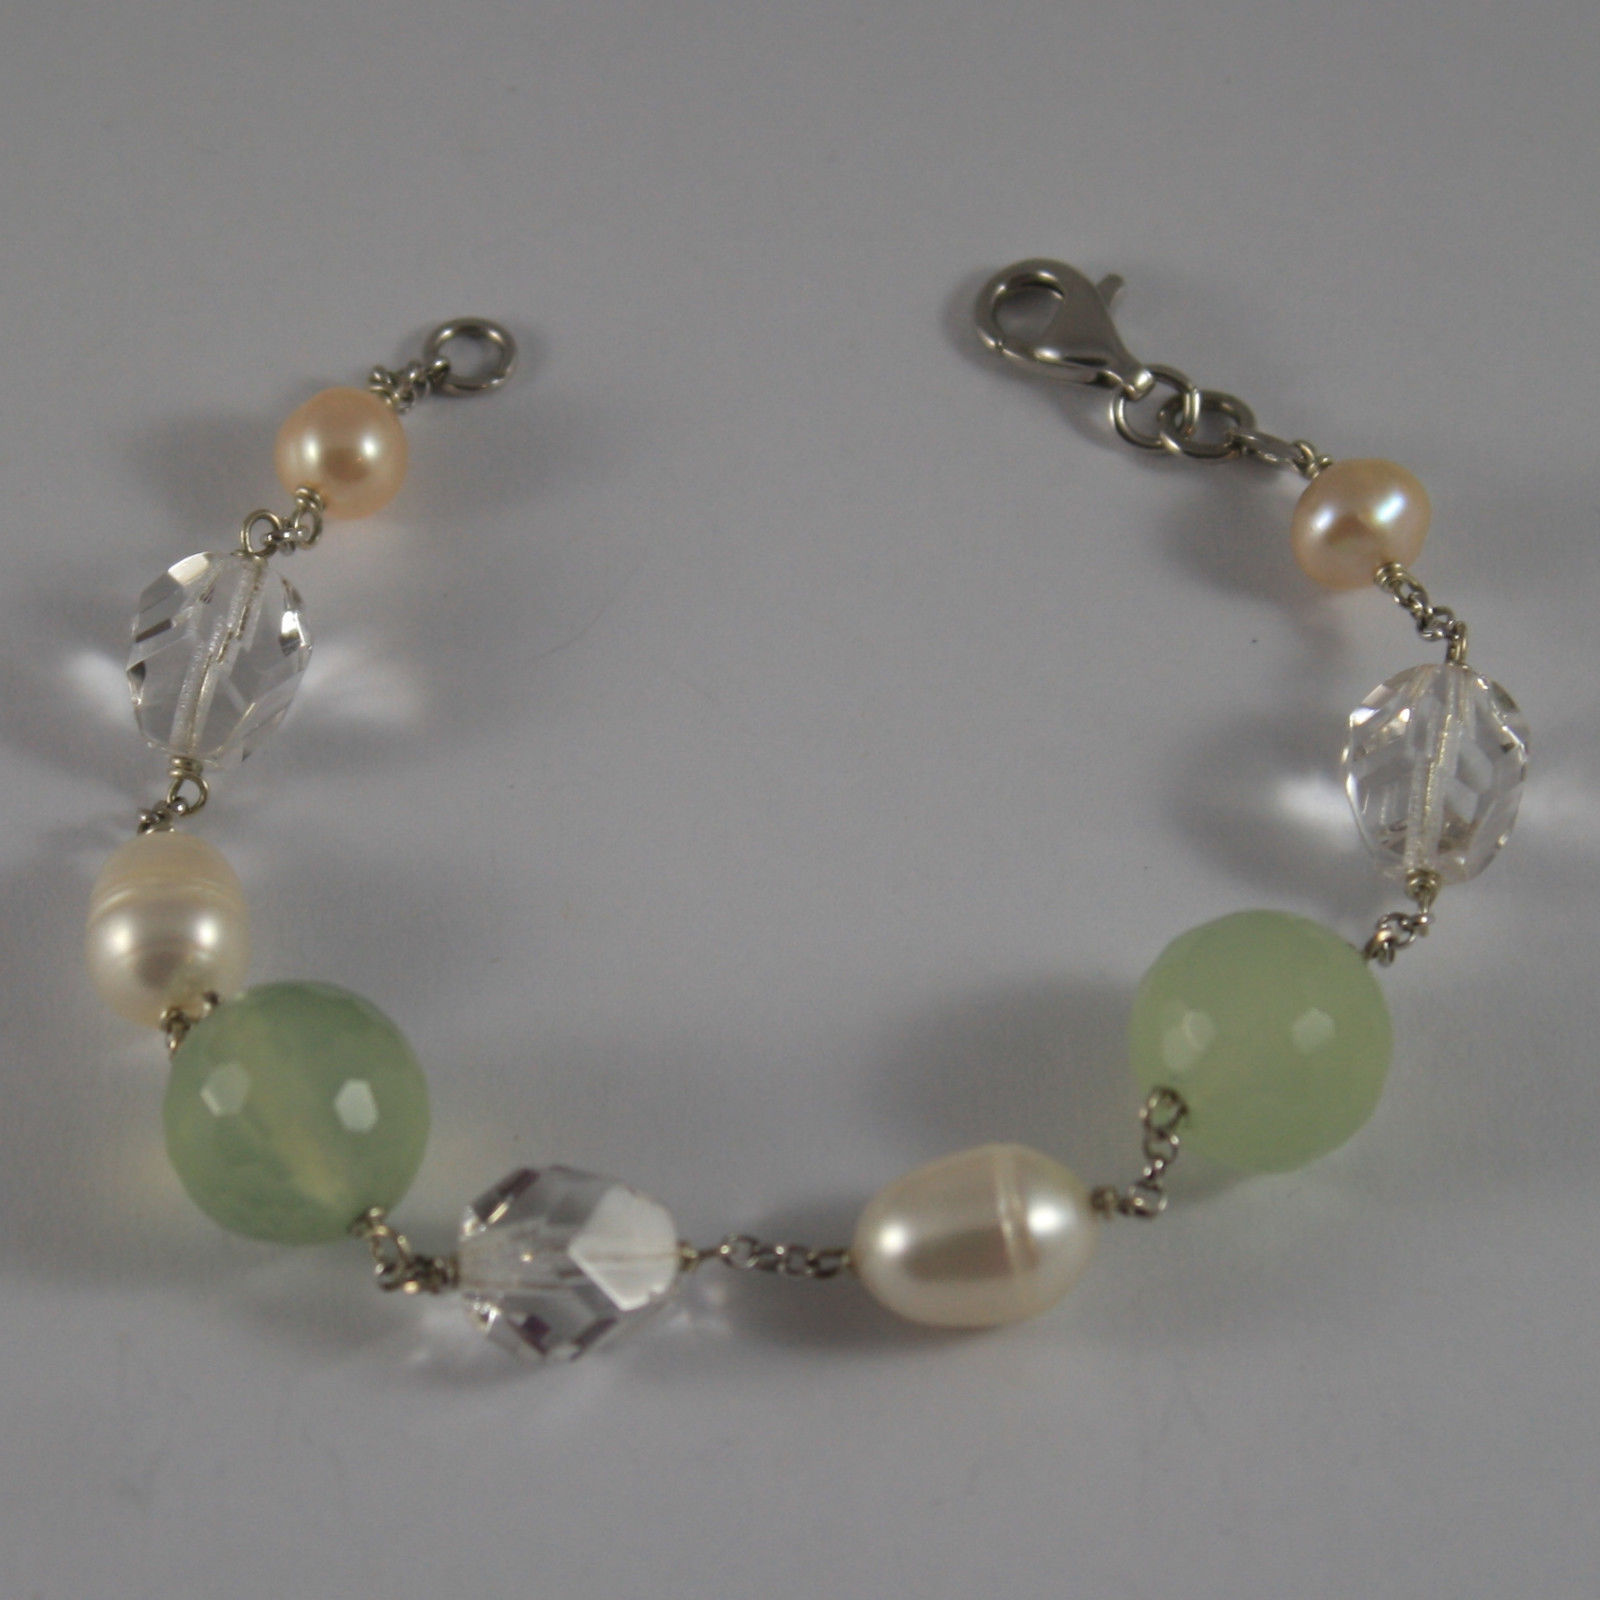 .925 RHODIUM SILVER BRACELET WITH GREEN JADE, CRYSTALS AND PEARLS